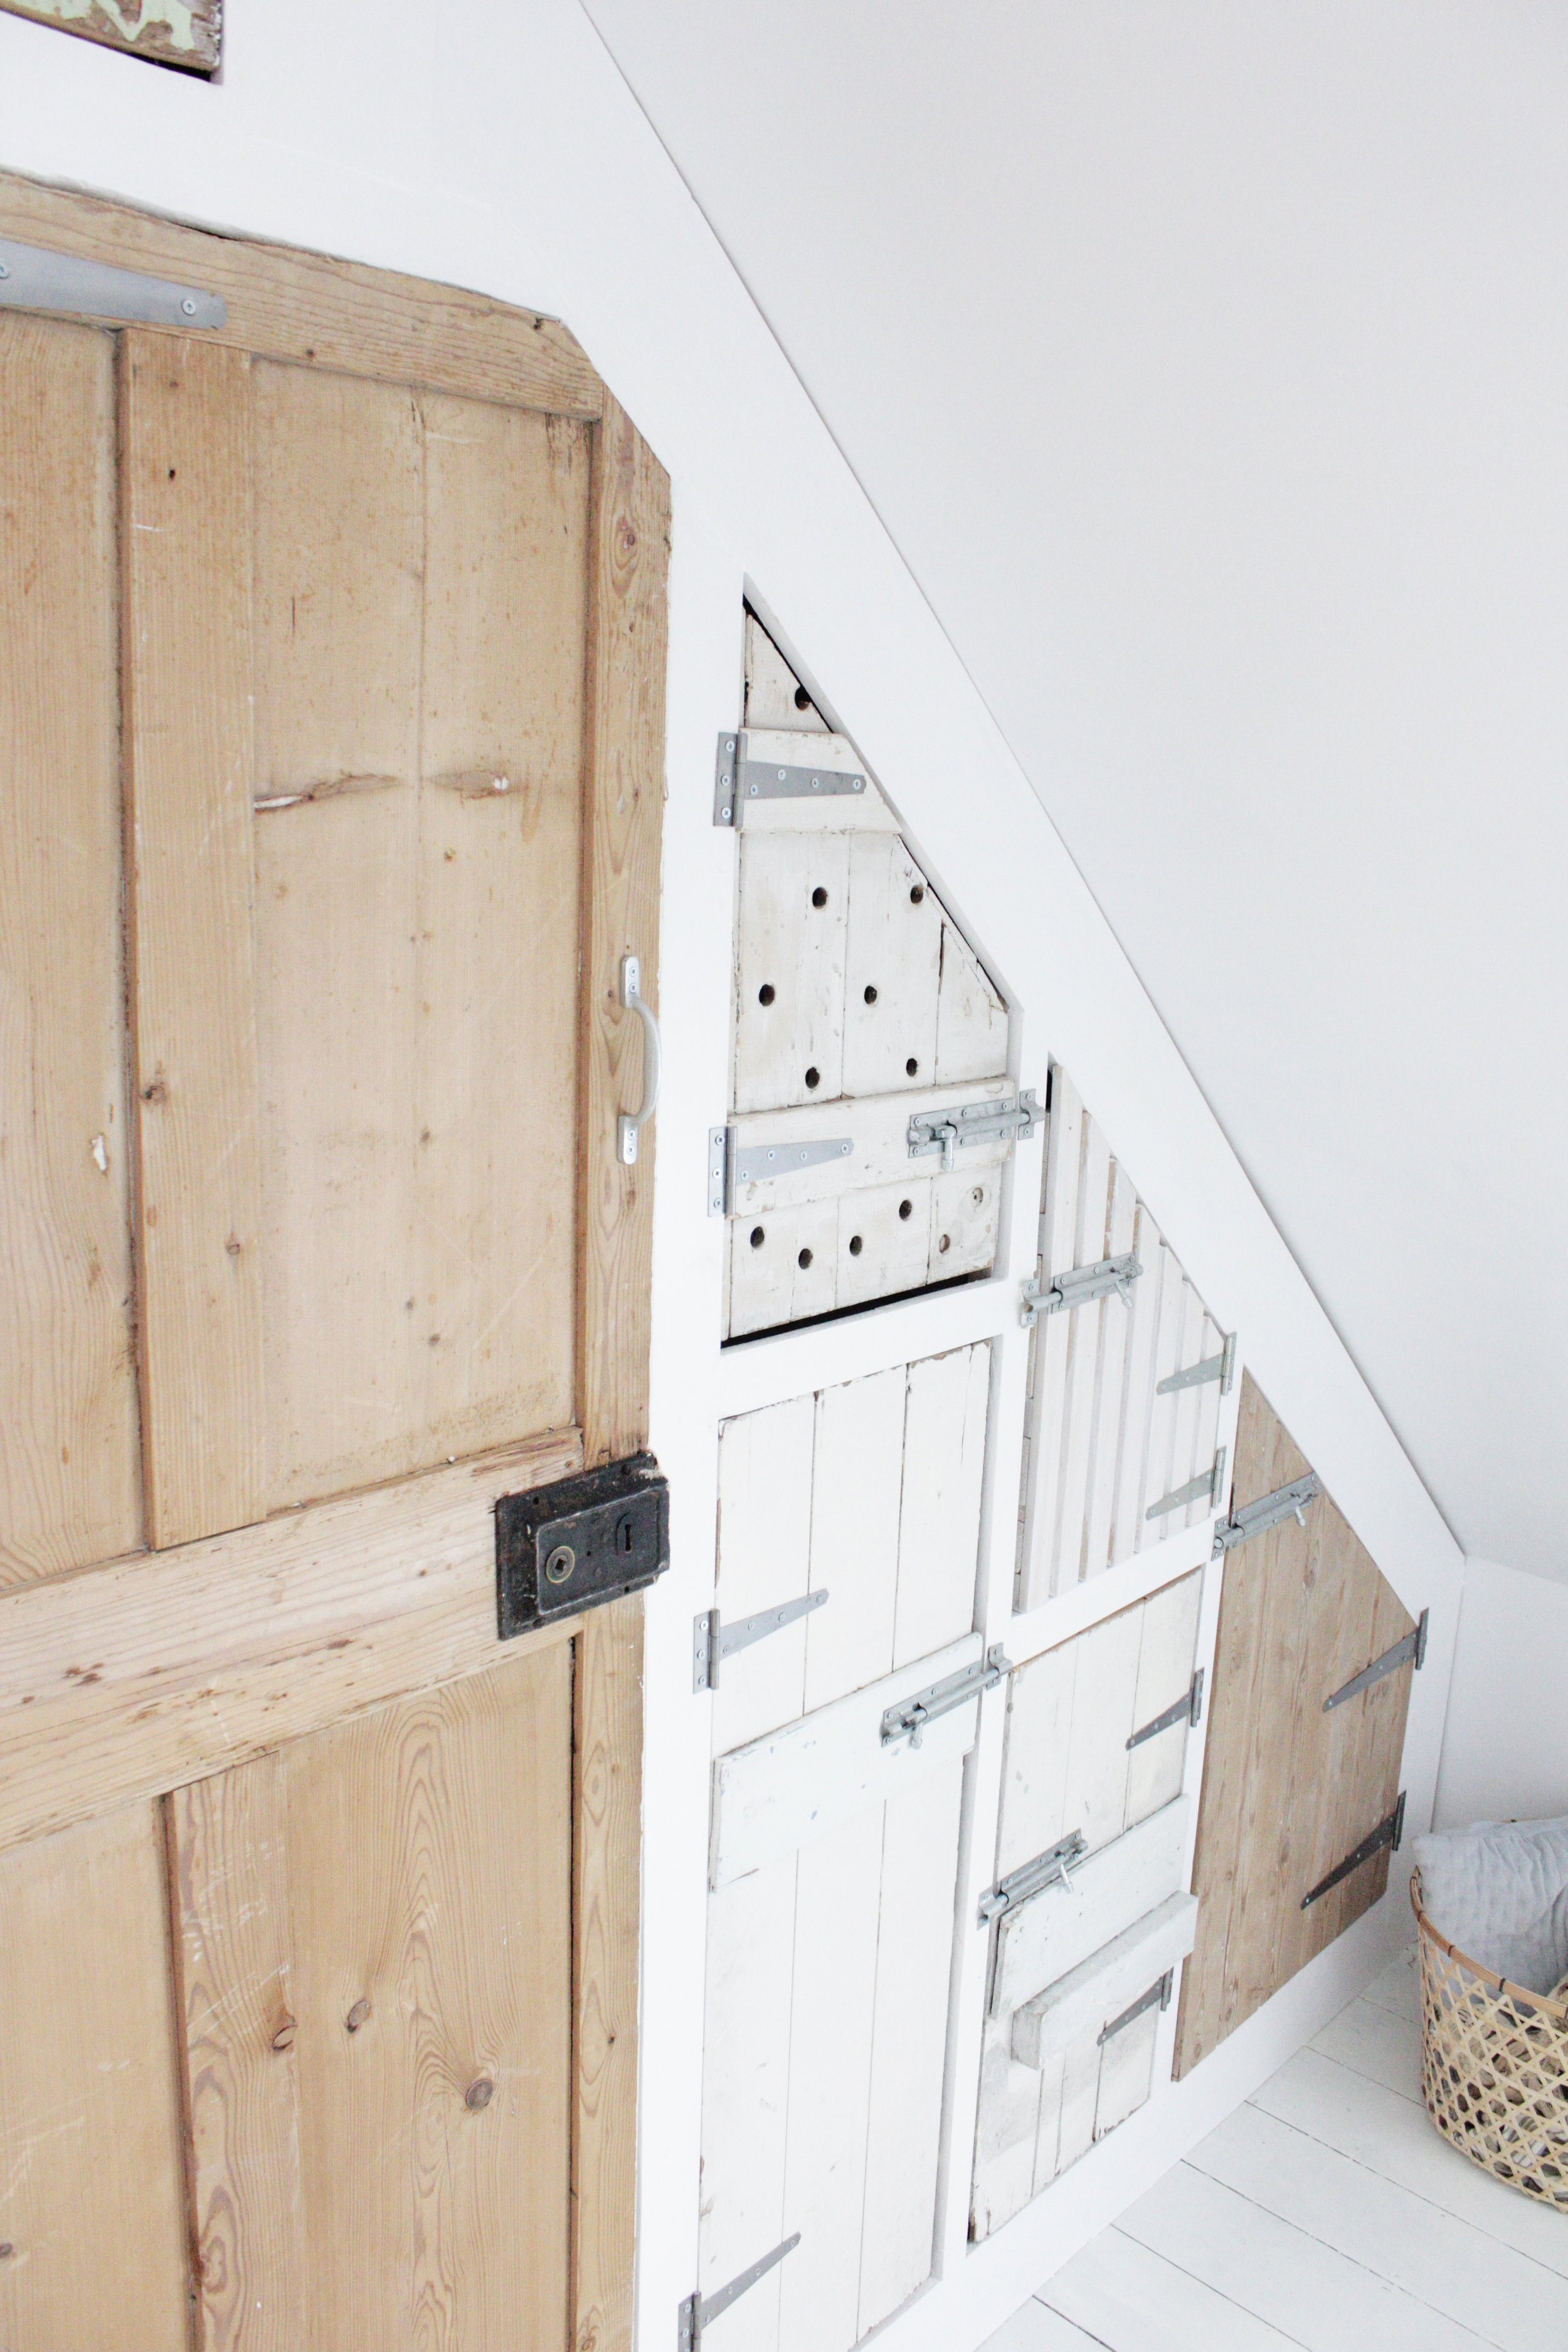 Build a wardrobe with reclaimed doors, tutorial by www.hestershandmadehome.com